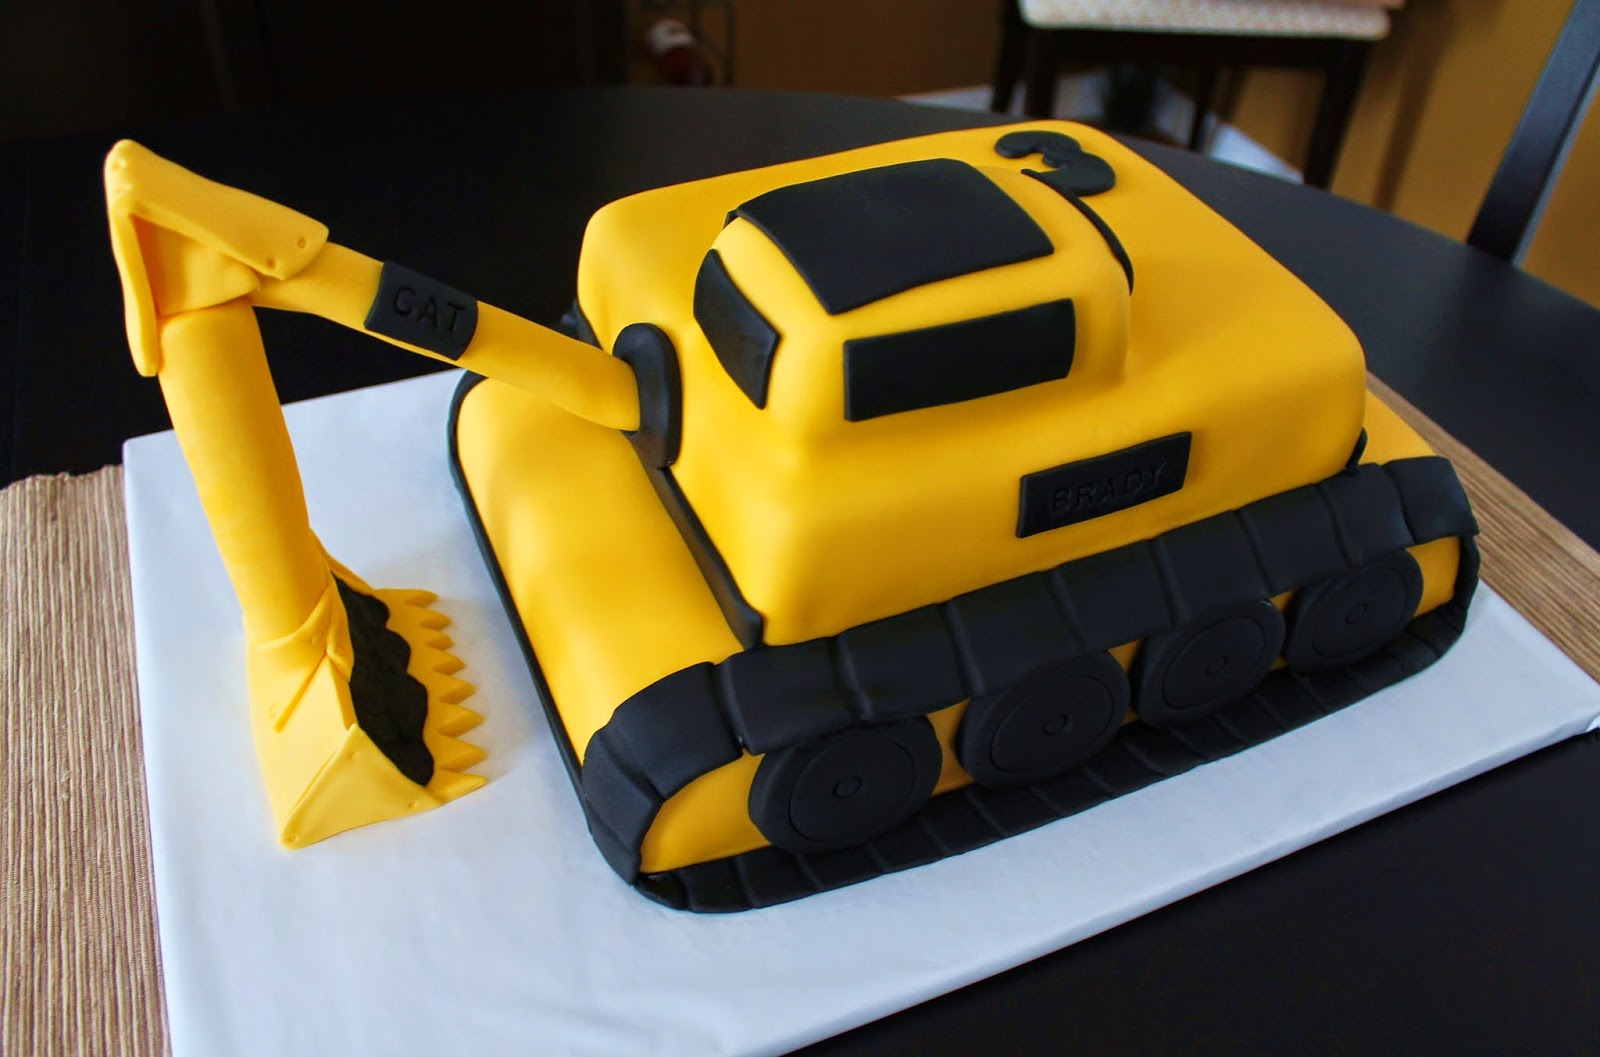 Creative Cakes By Lynn Excavator Cake Construction Cupcakes